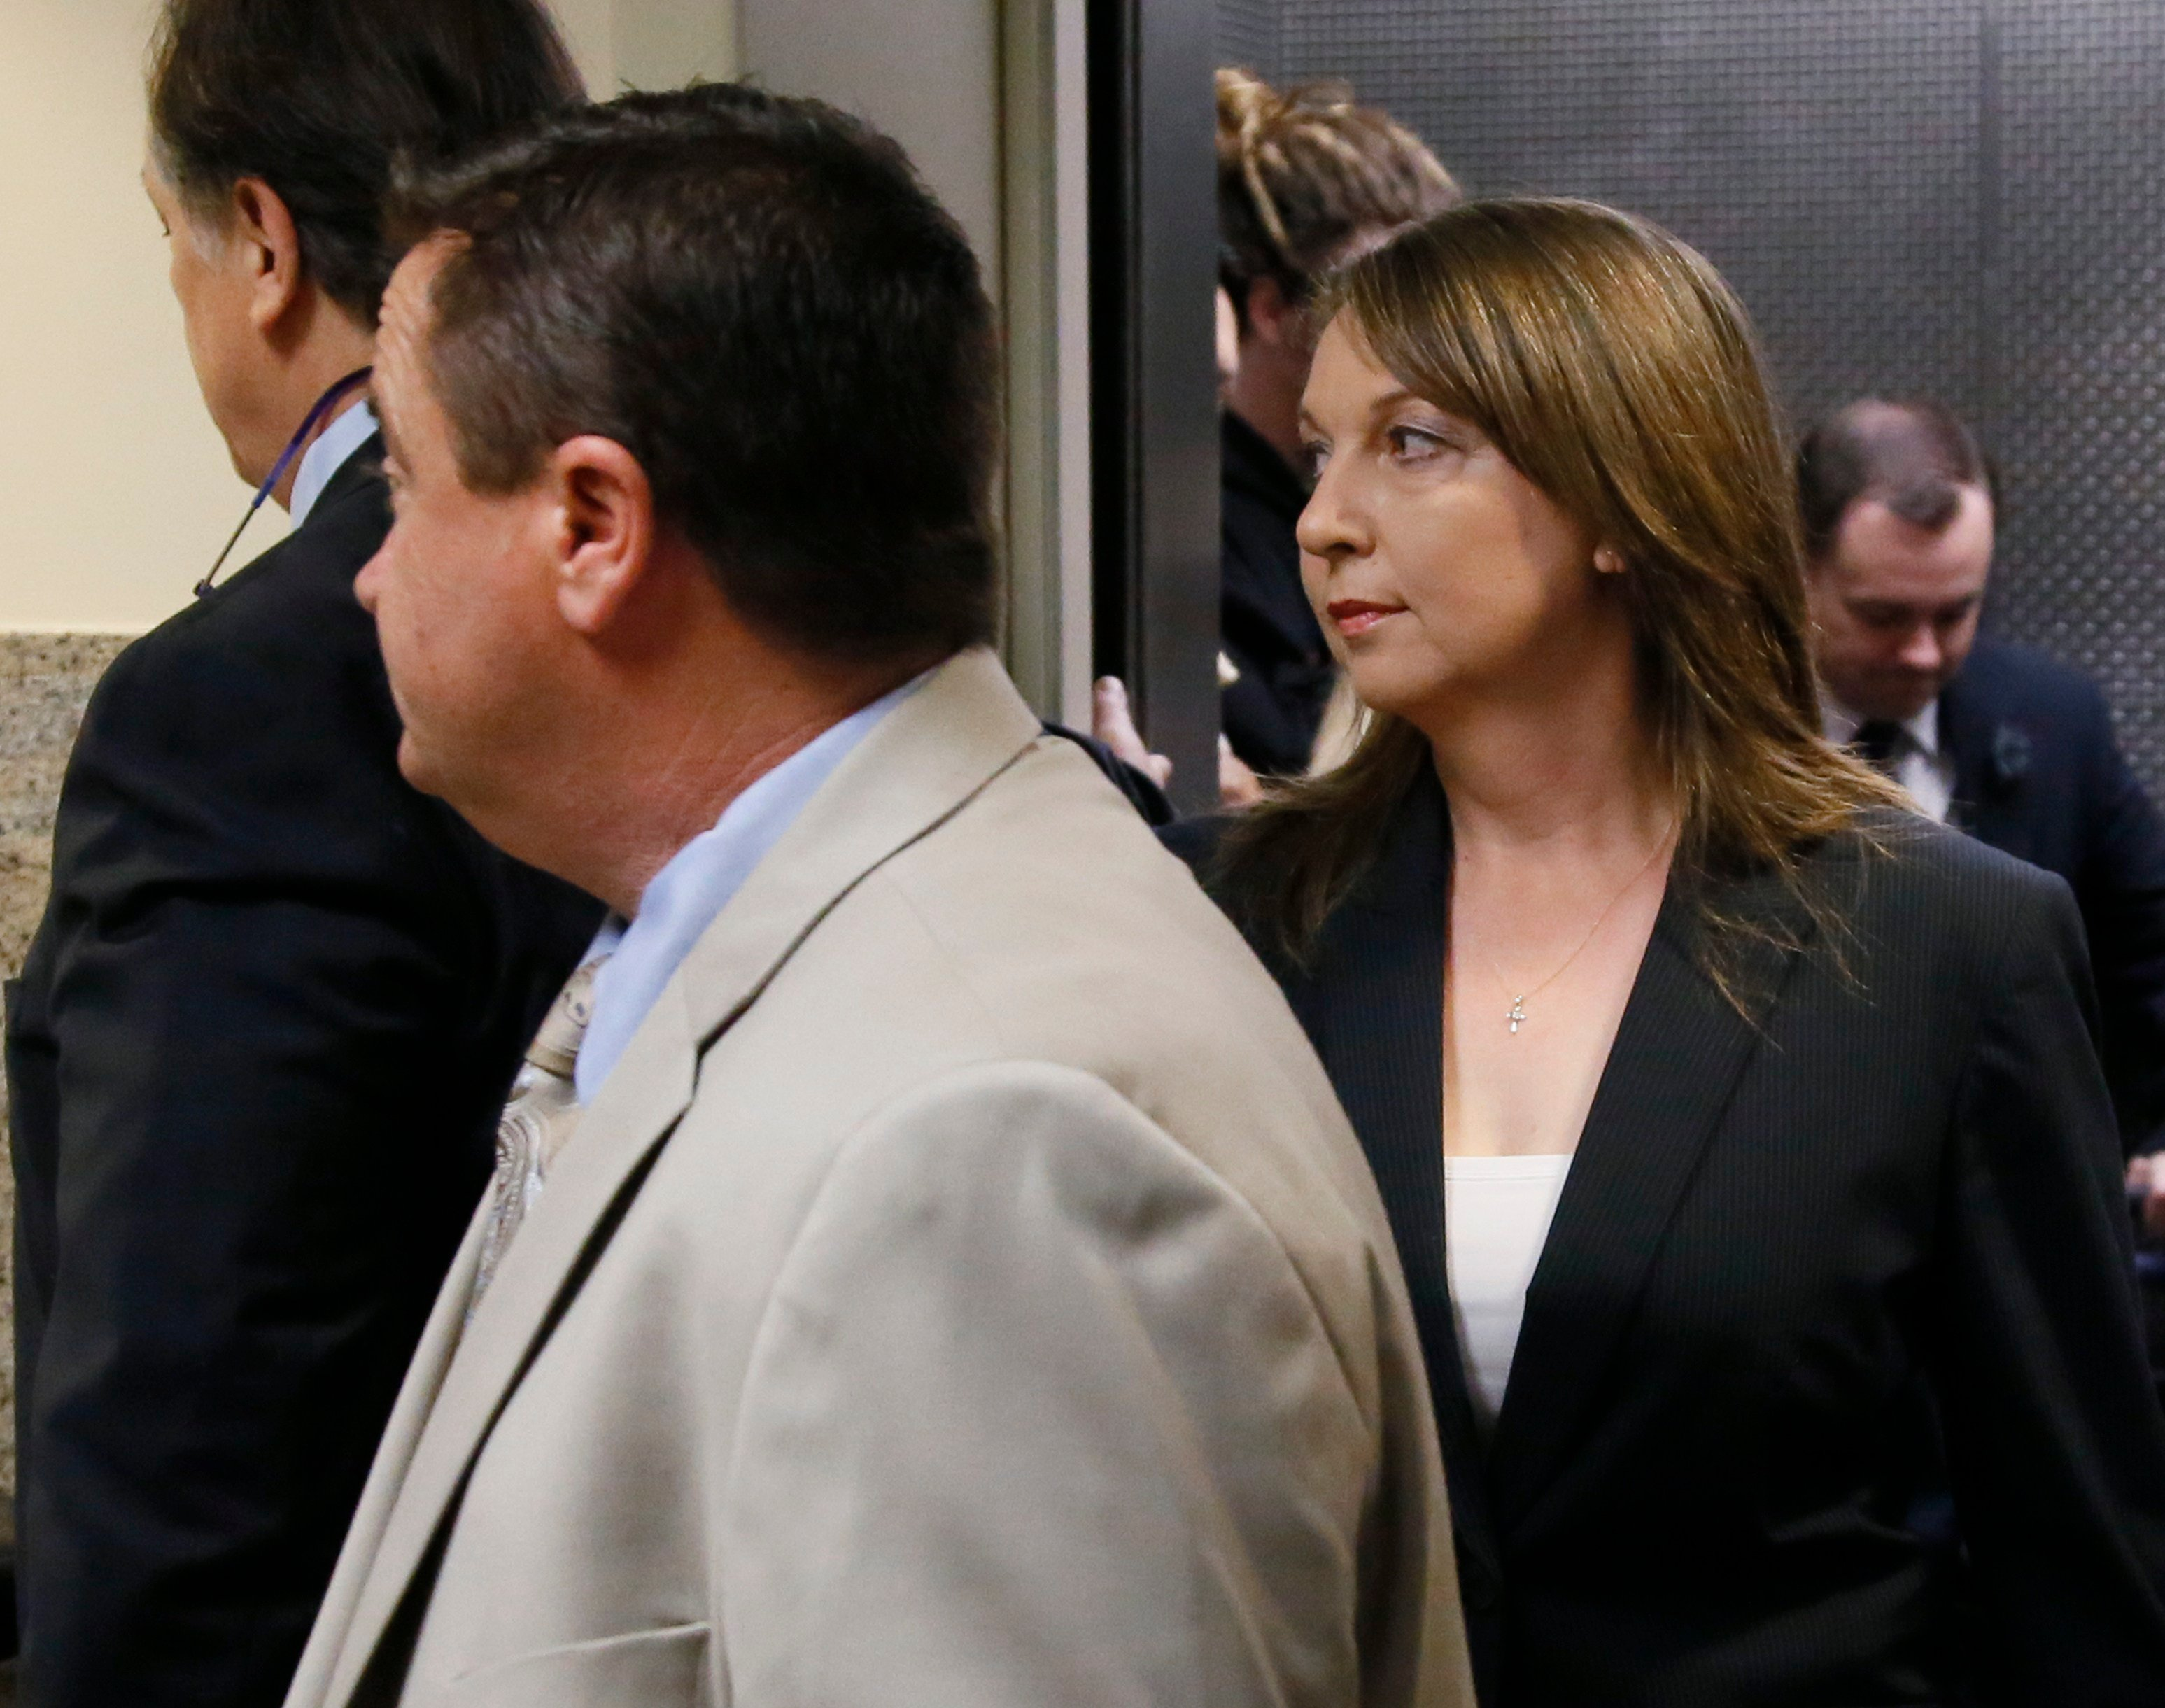 Tulsa police officer Betty Jo Shelby, right, arrives with her husband, Dave Shelby, left, for her trial in Tulsa, Okla., Friday, May 12, 2017. She is charged with manslaughter in the shooting of Terence Crutcher, an unarmed black man. (AP Photo/Sue Ogrock